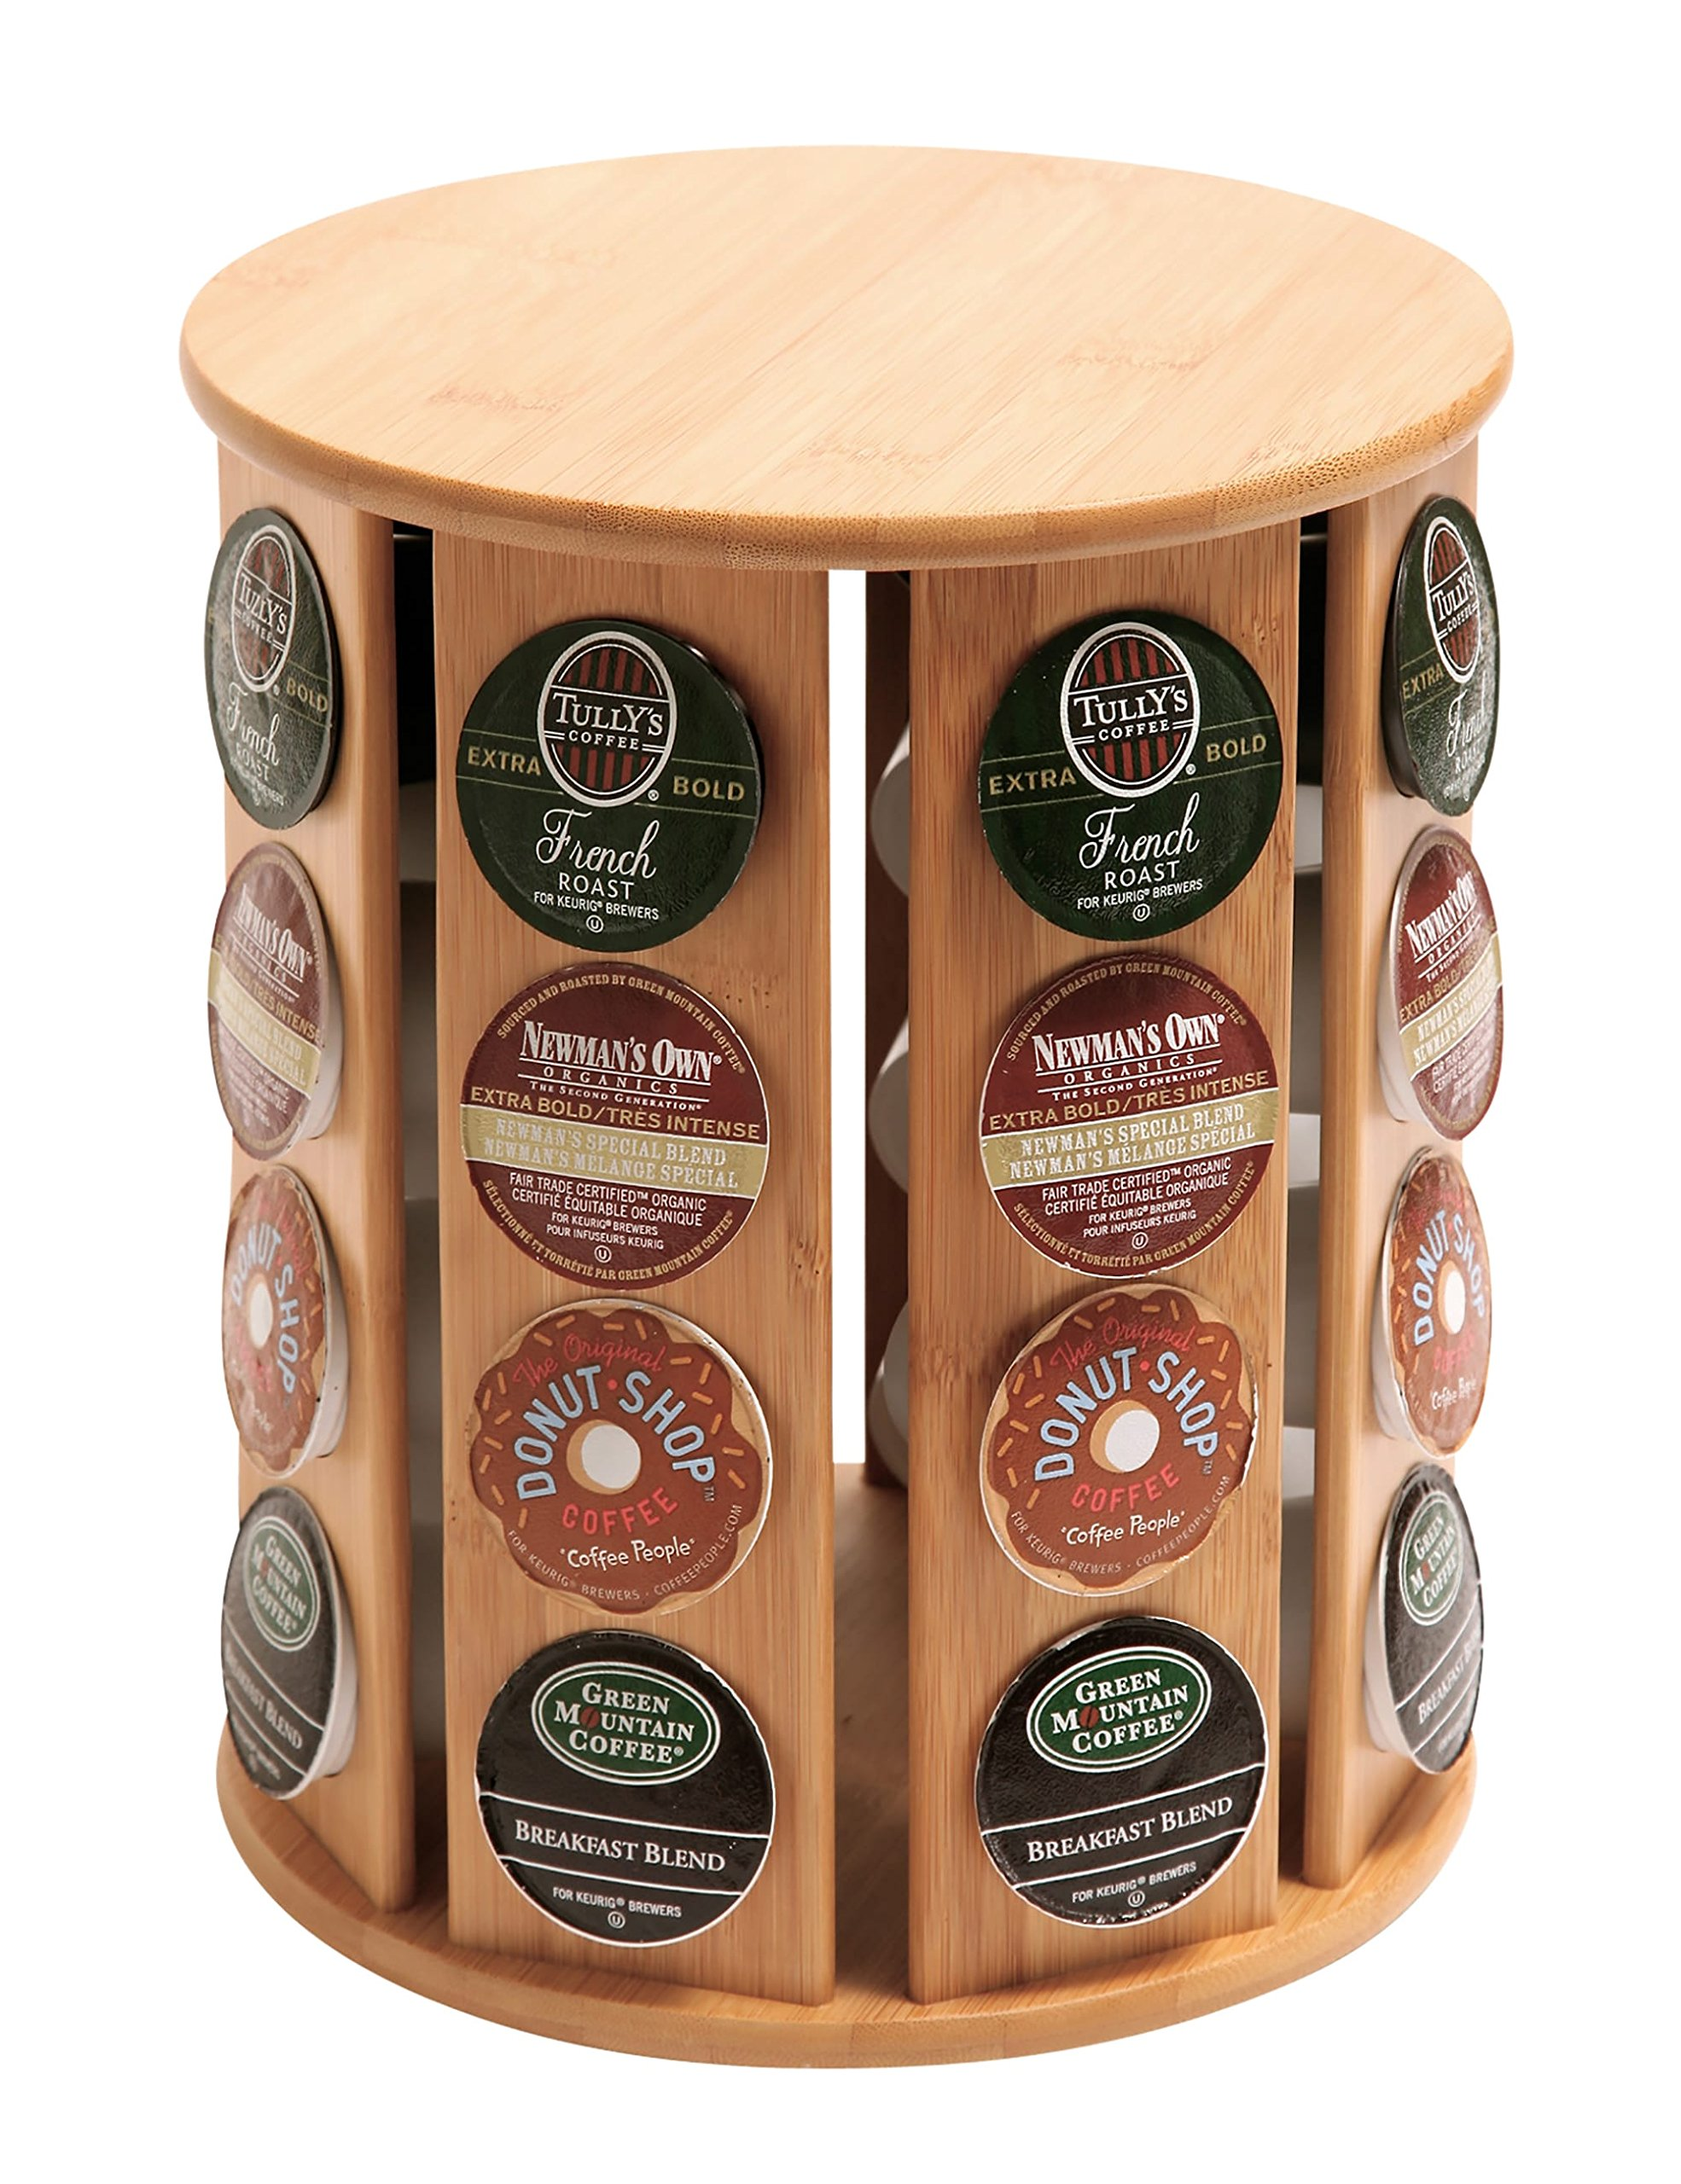 QI Bamboo Rotating Coffee Storage Keurig K-Cup Compatible Pod Holder Dispenser (10658)